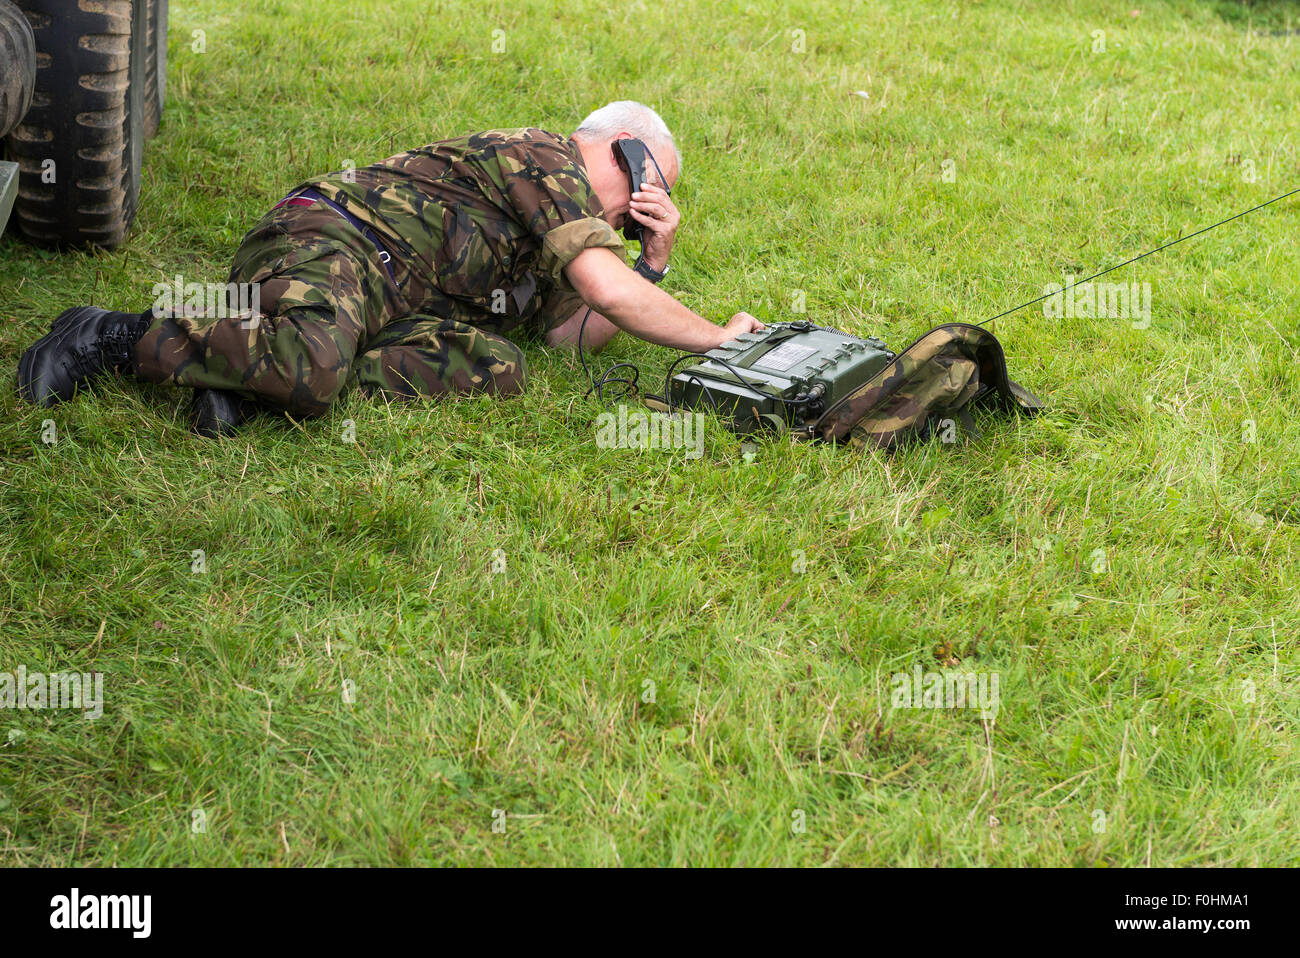 Man dressed in camouflage army uniform laying on ground using army radio telephone - Stock Image